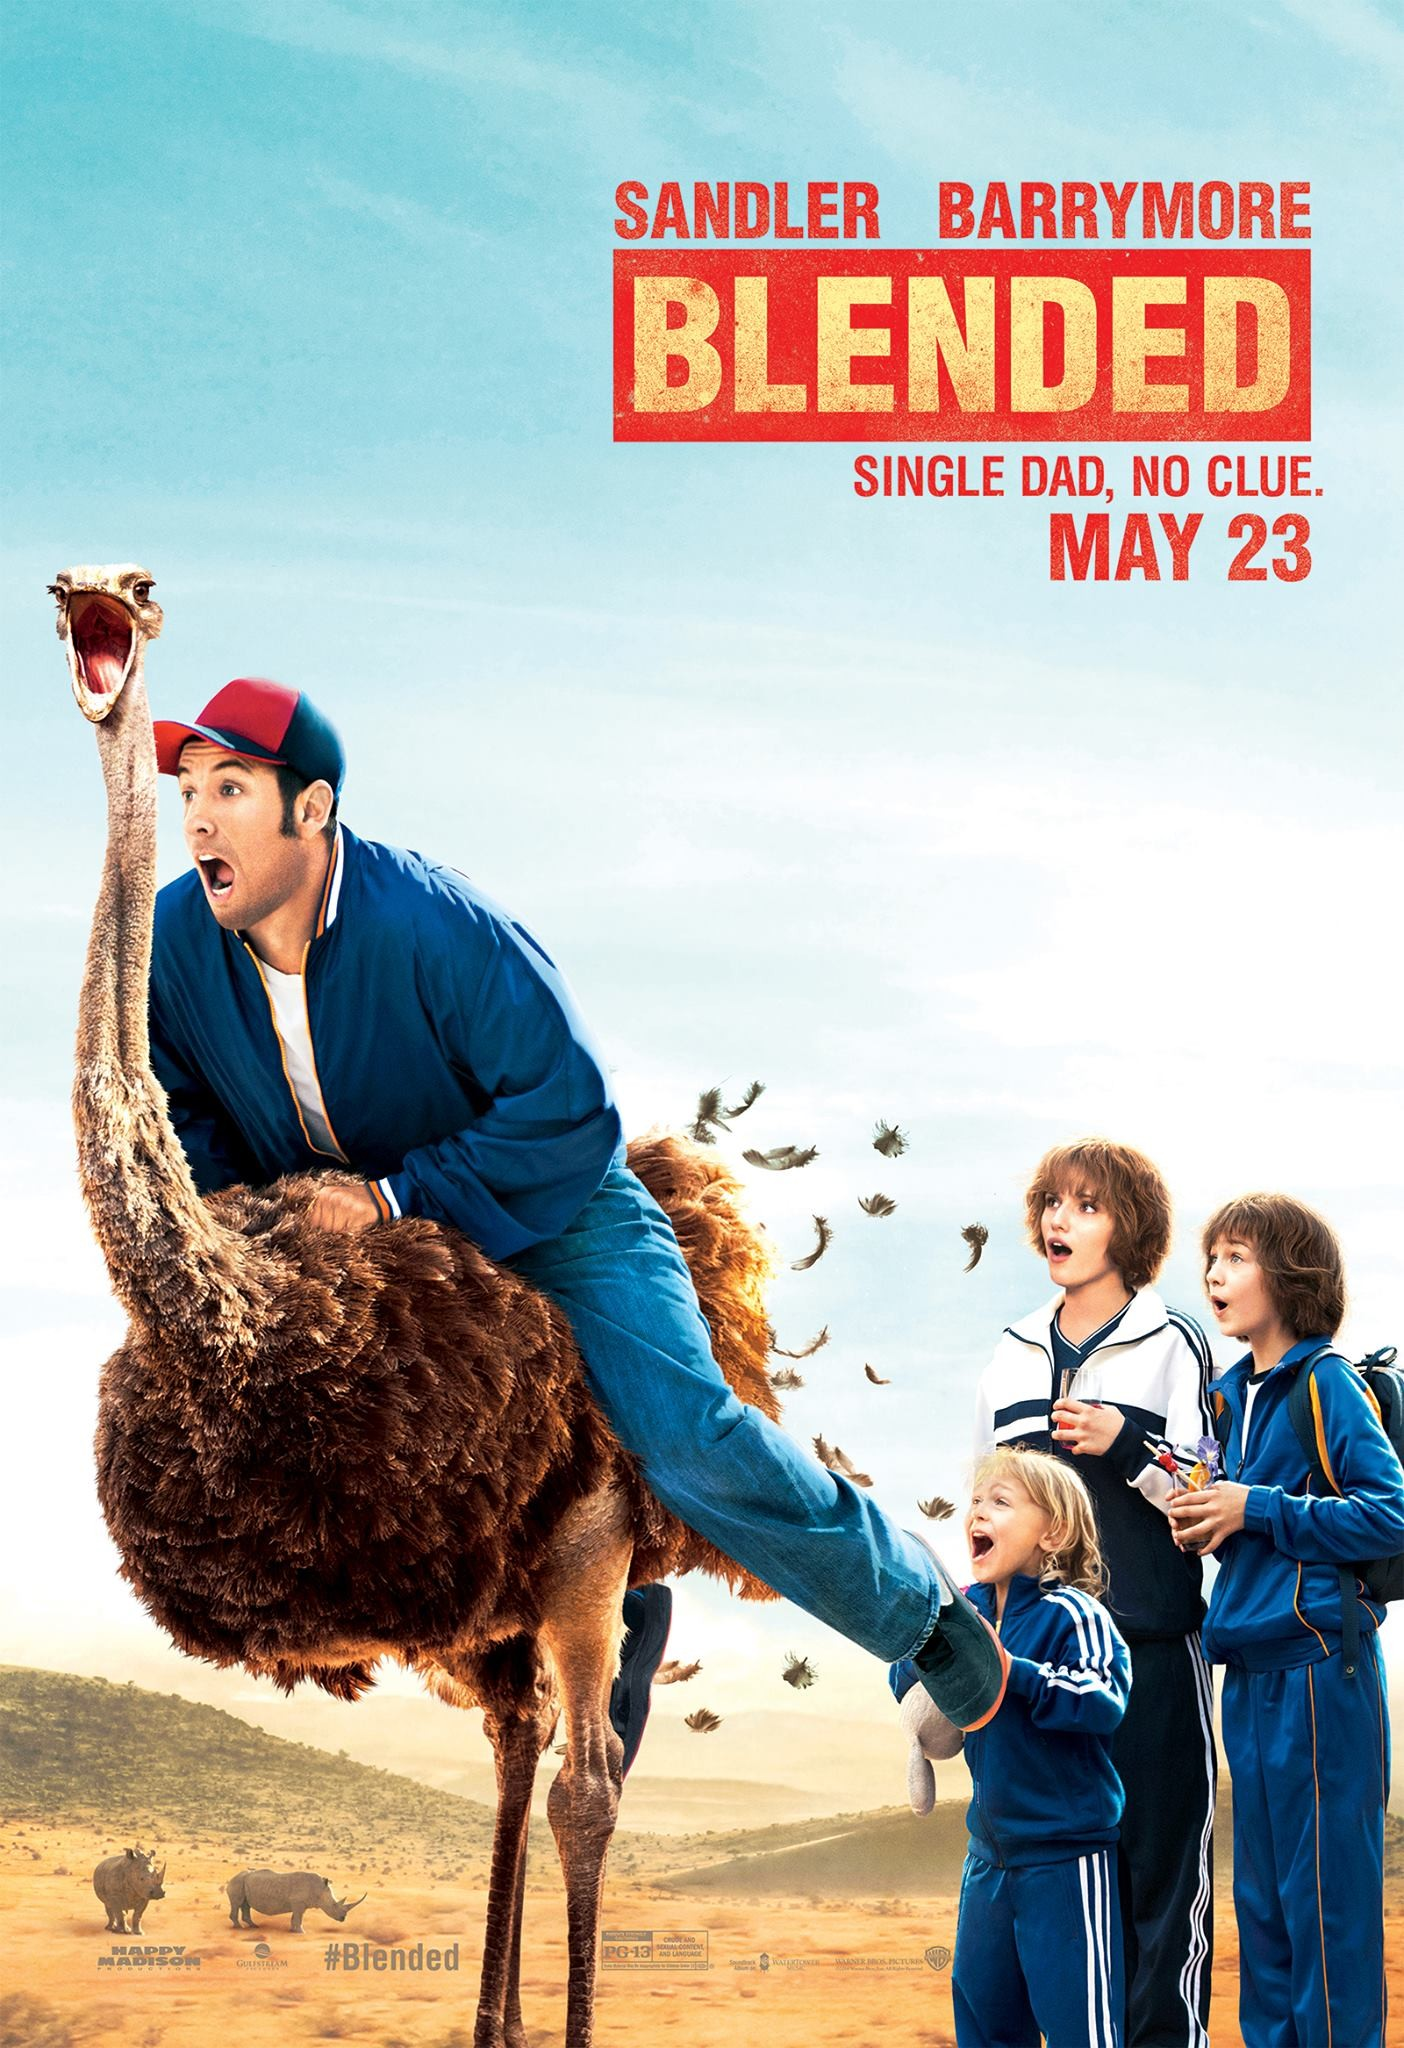 Blended-Official Poster Banner PROMO XXLG-21MARCO2014